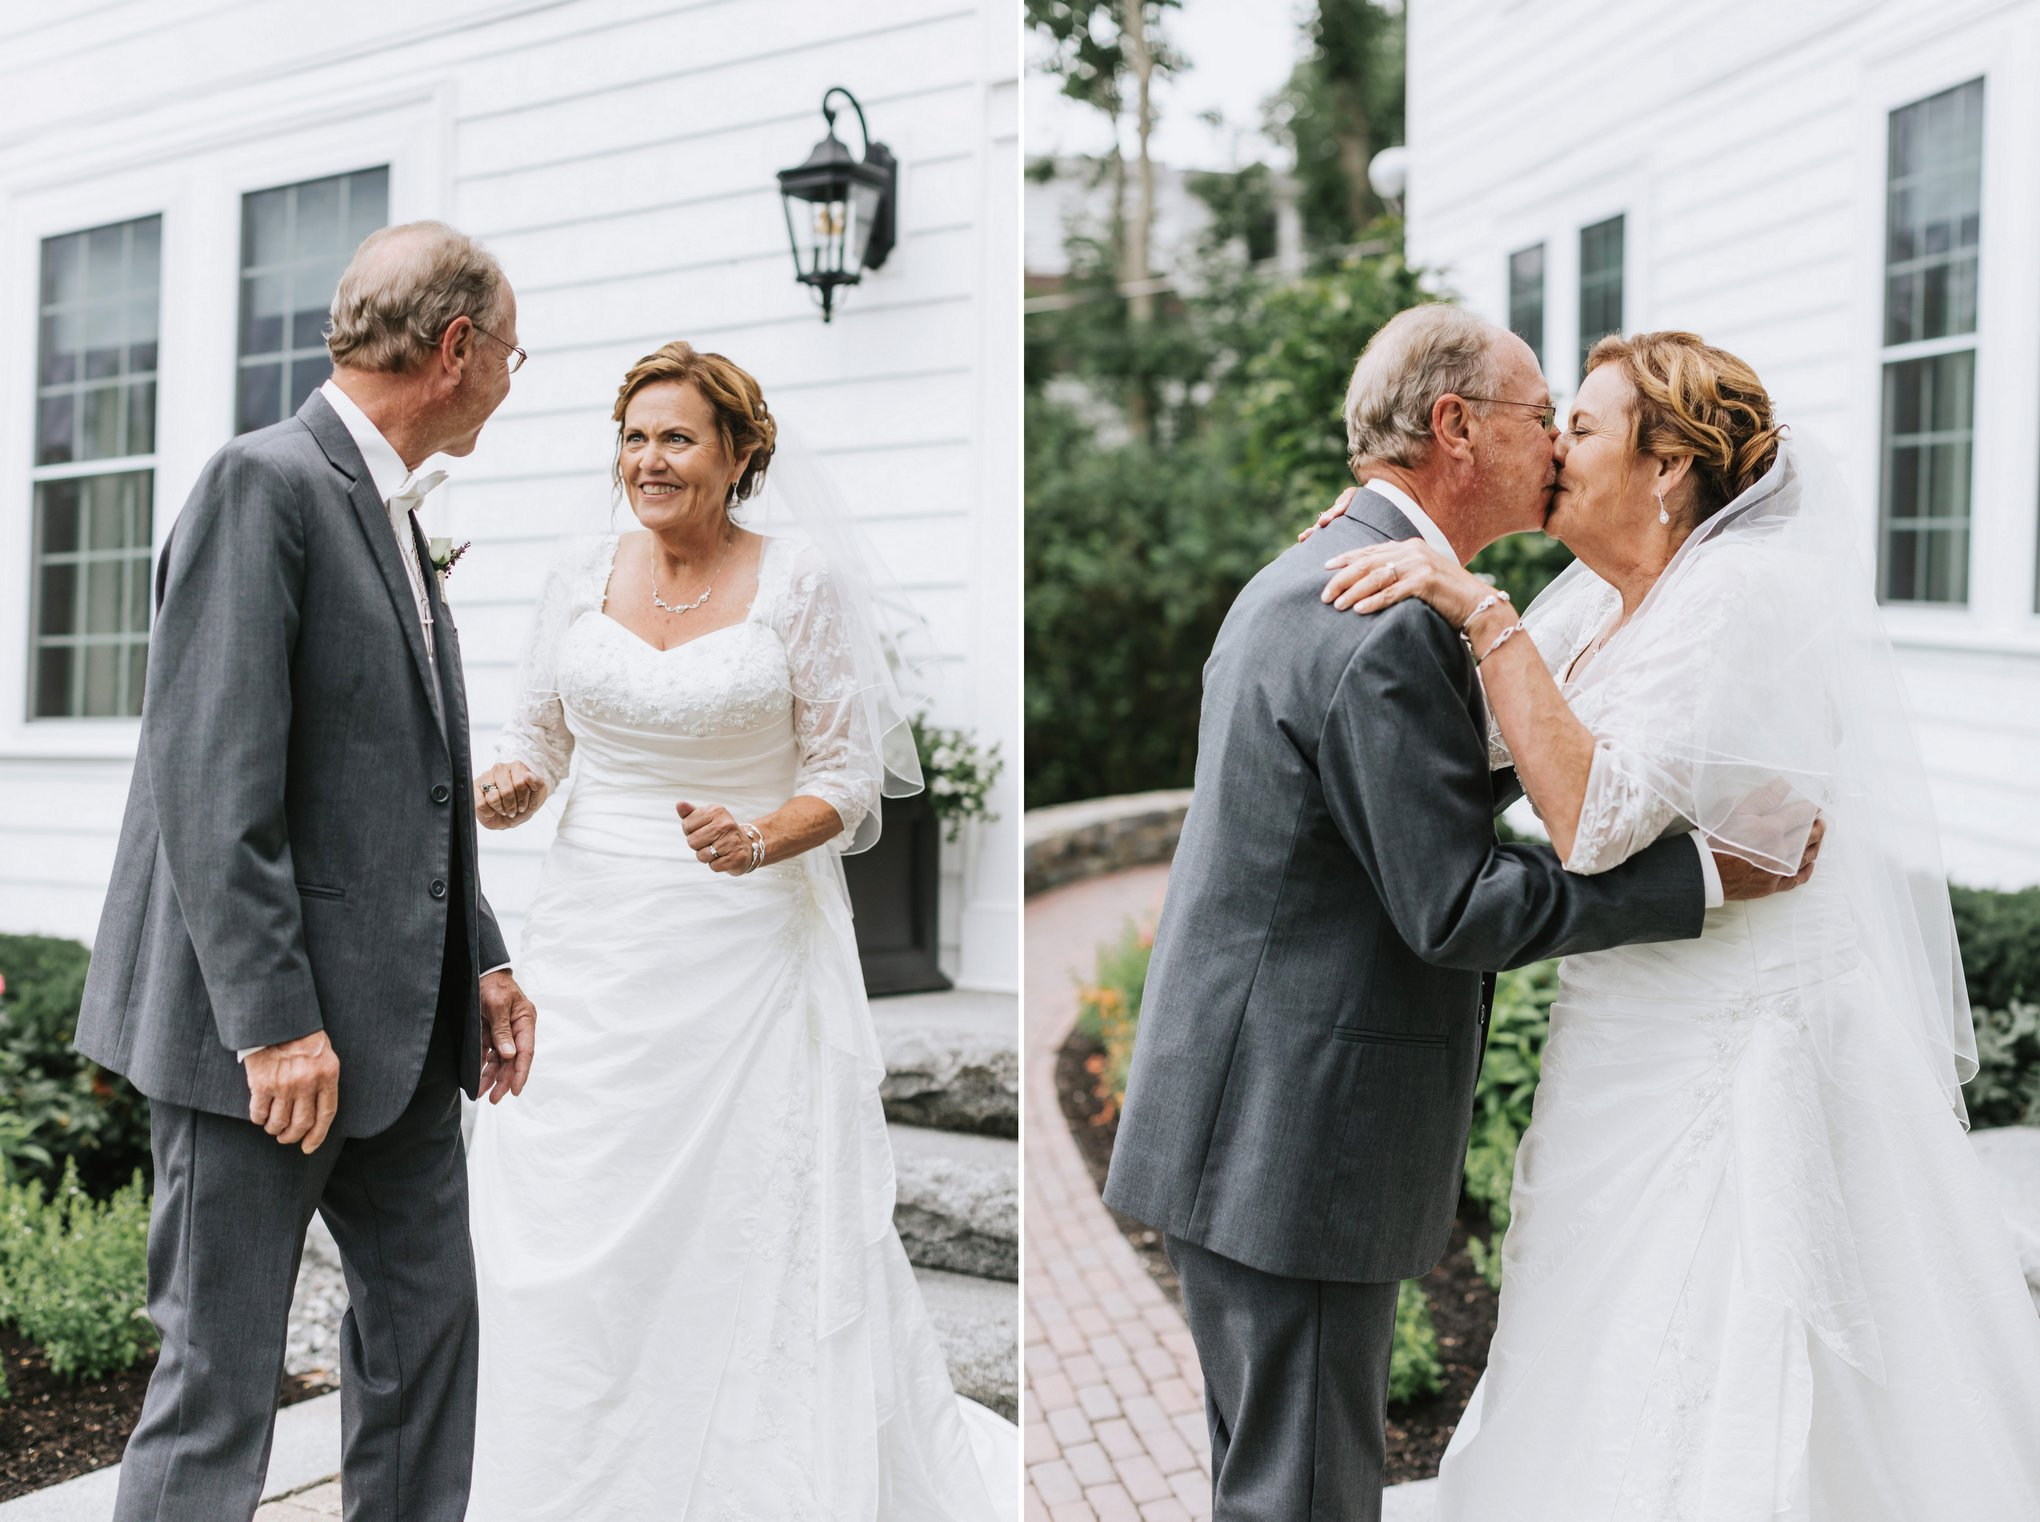 York_Harbor_Inn_Wedding_Photographer-11.jpg